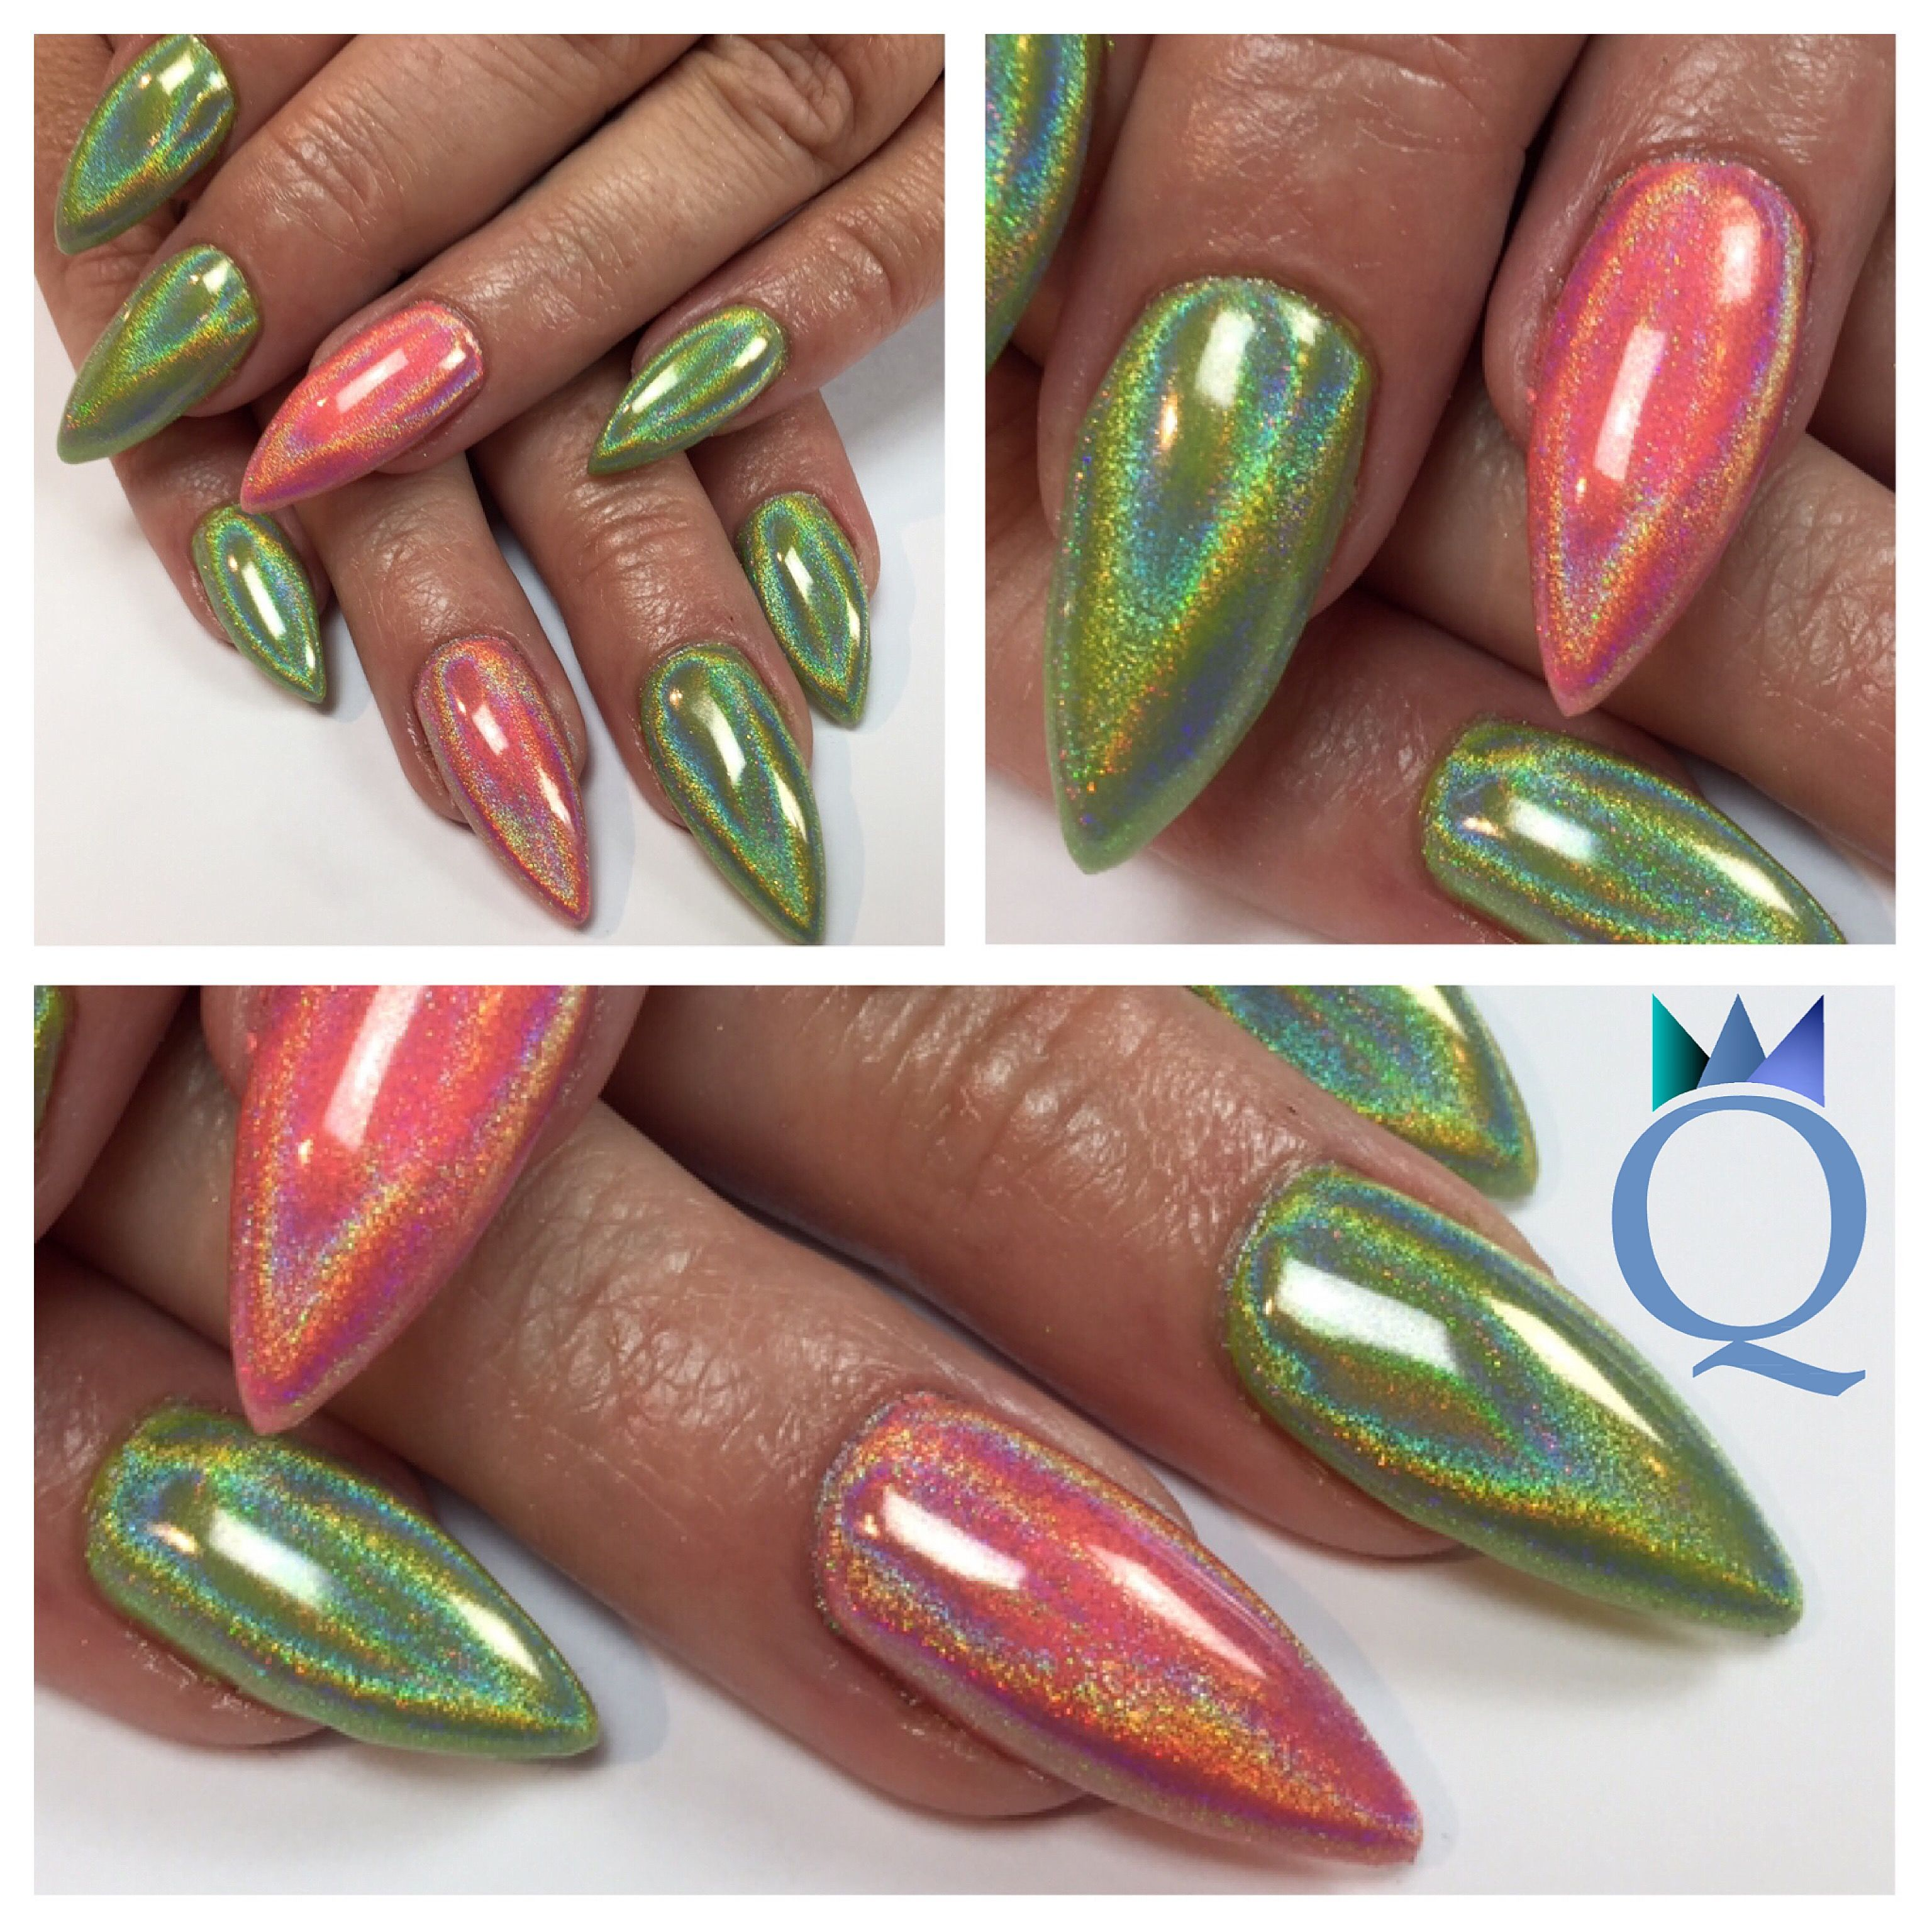 Stilettosnails Gelnails Nails Pink Green Akyado Holopigment